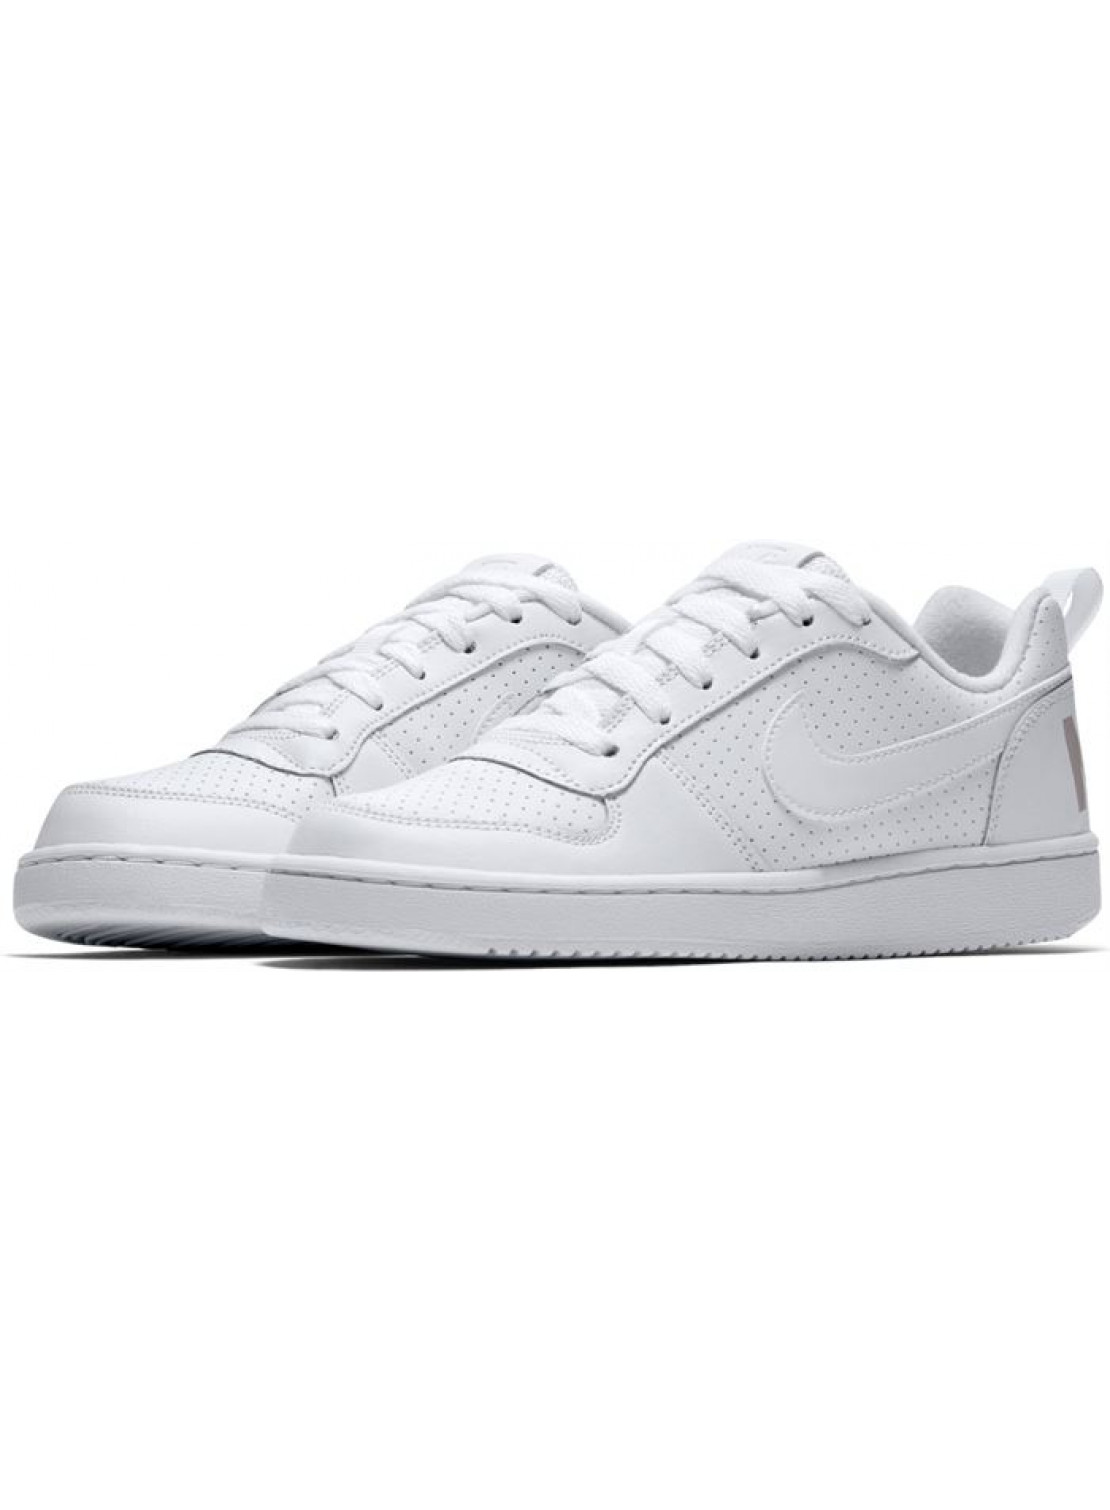 NIKE COURT BOROUGH LOW SHOES JUNIOR/WOMAN WHITE